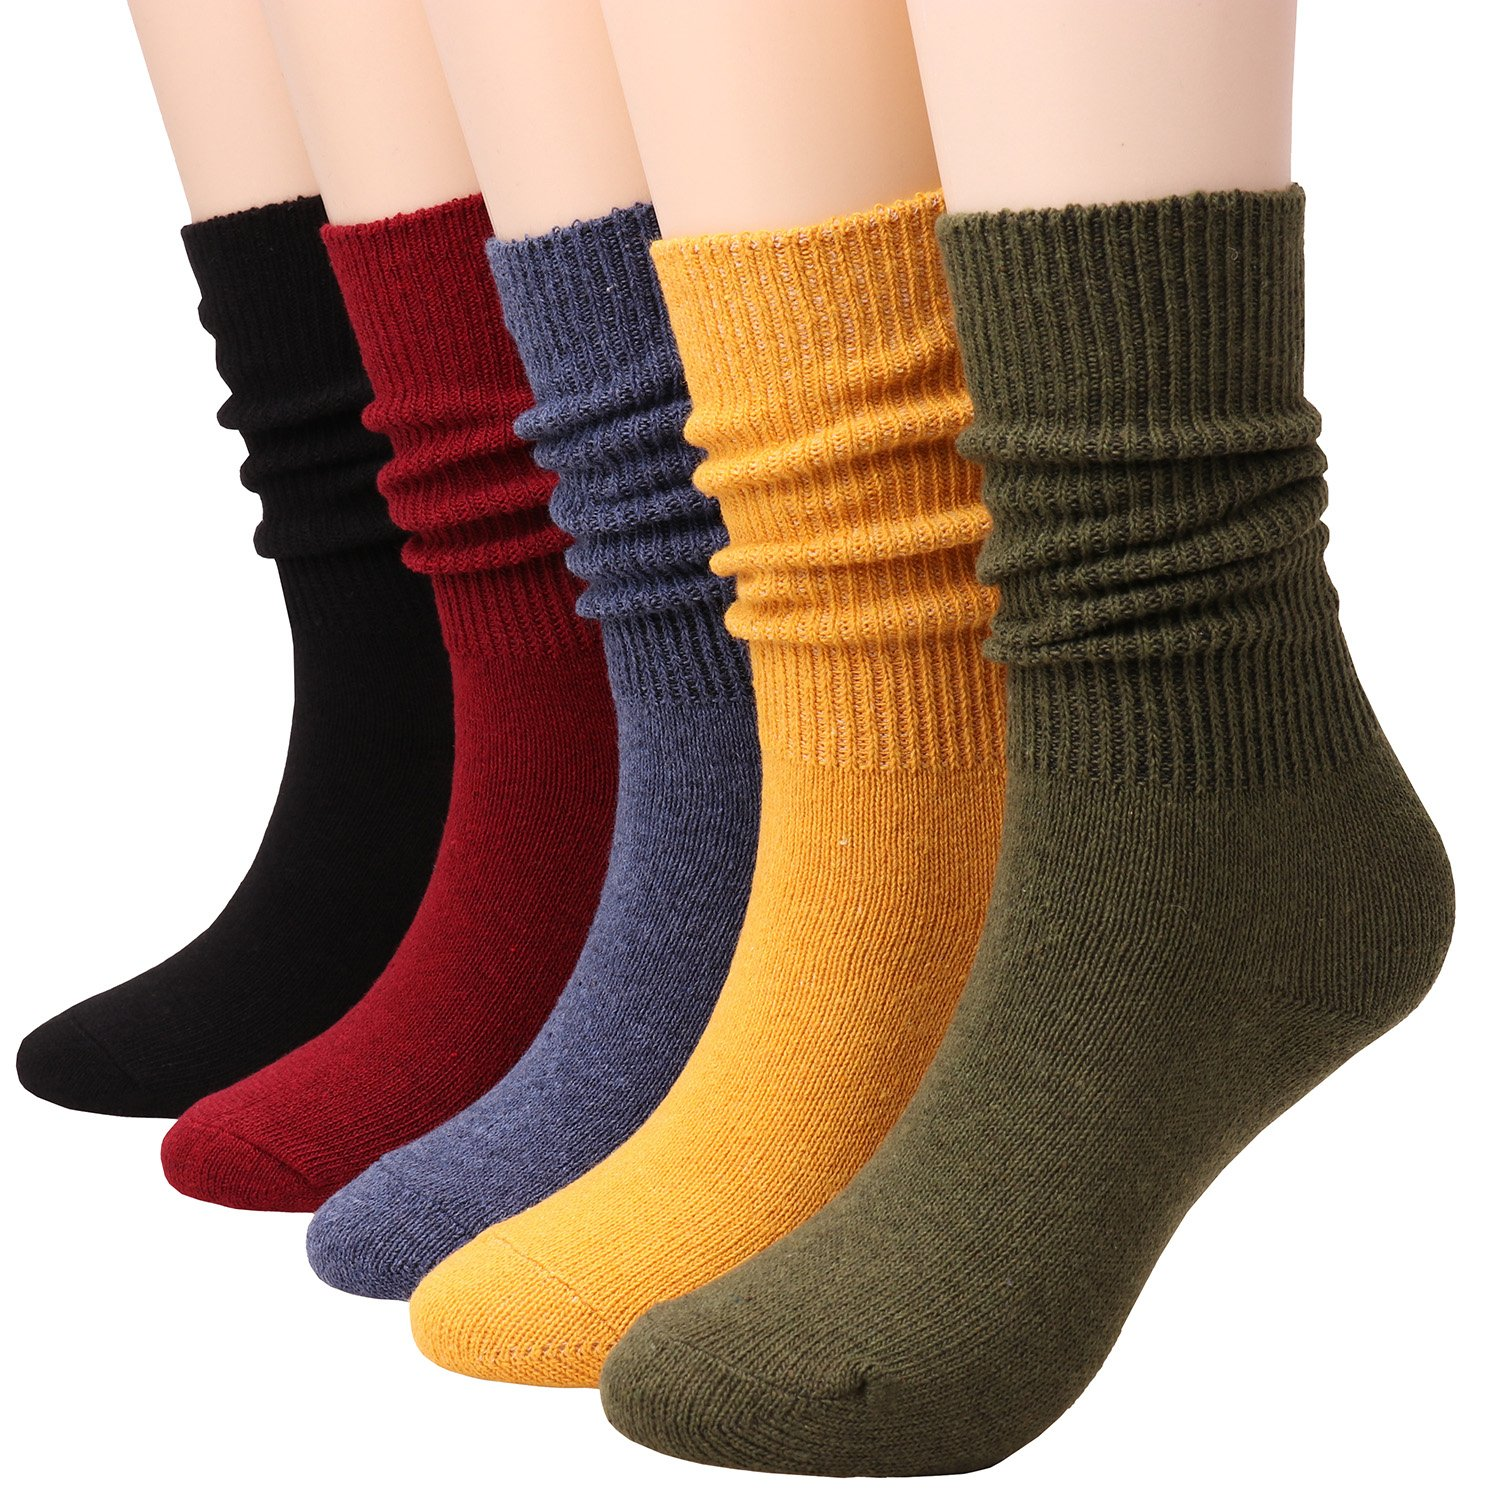 5 Pairs Womens Crew Socks All Season Soft Slouch Knit Cotton Socks Solid Color,5-10 W81 5-10 W81 (Solid Color)